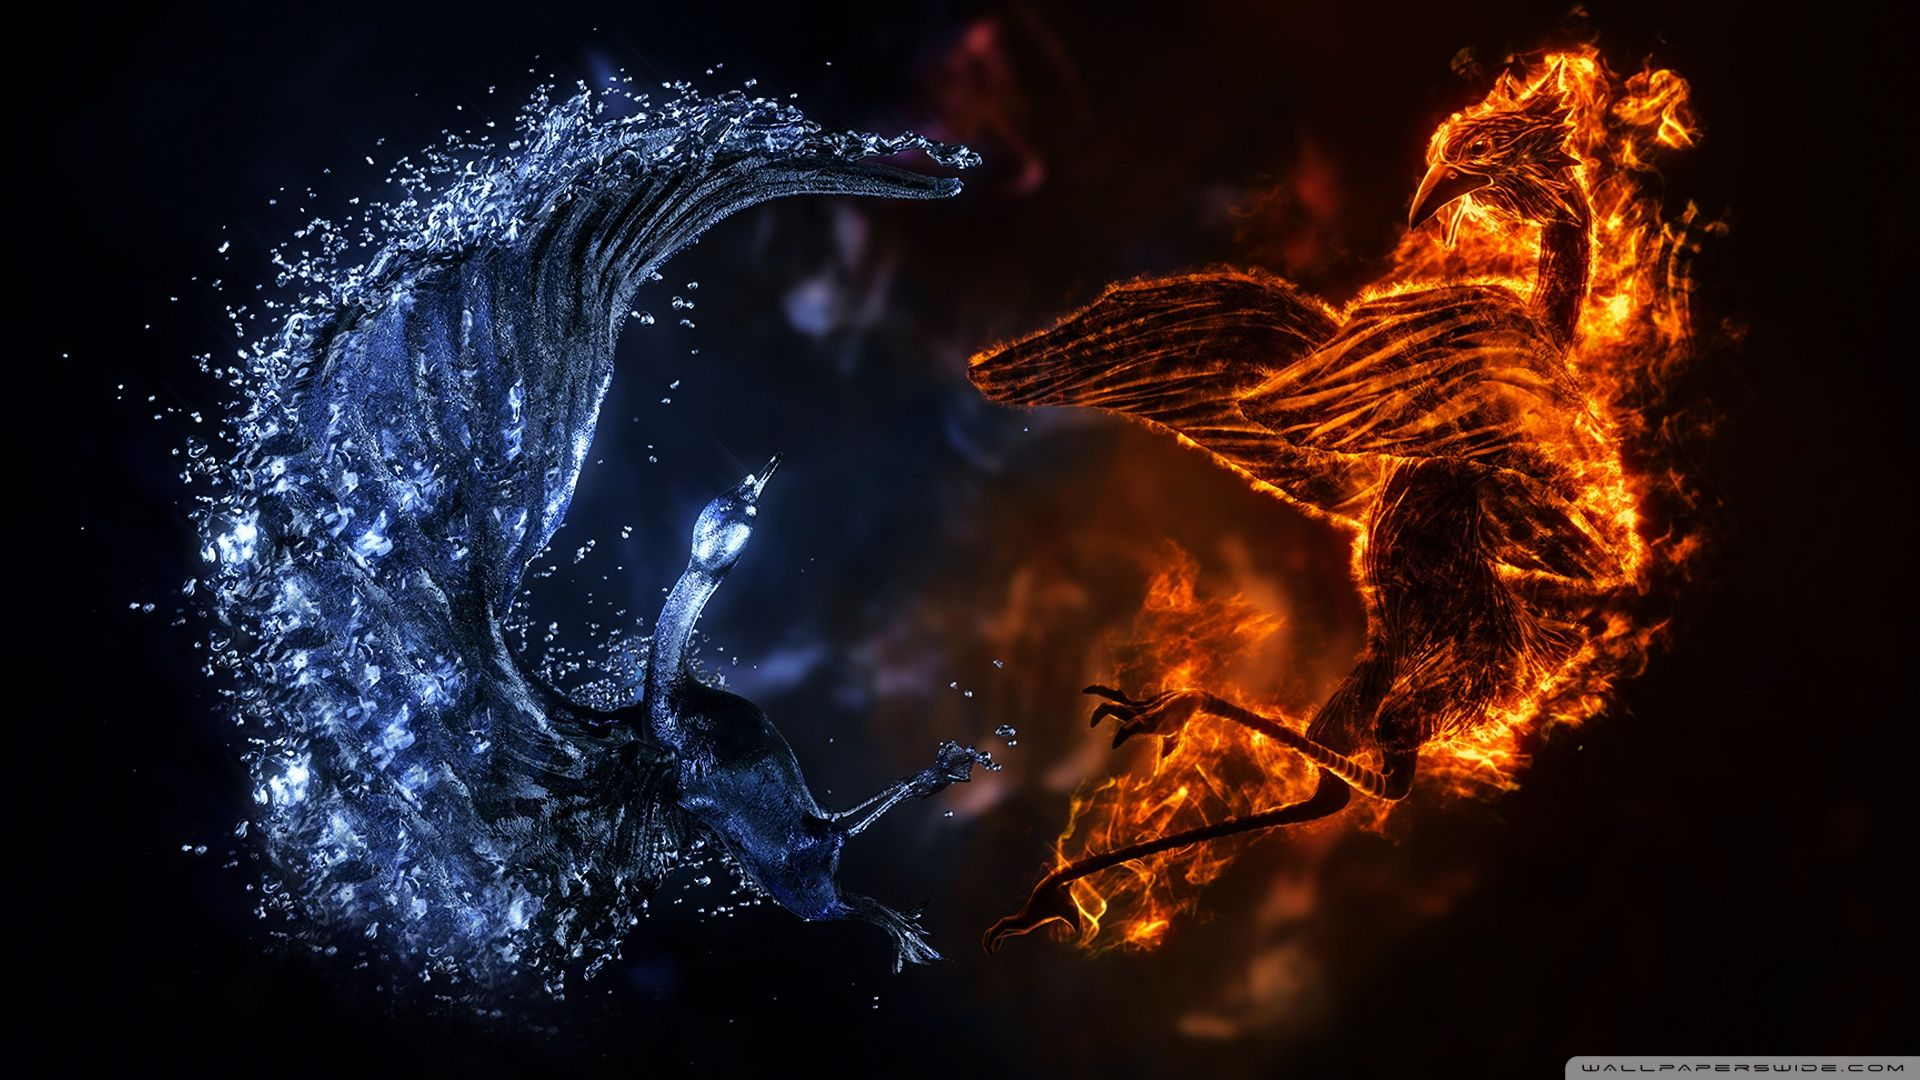 abstract - fire and ice wallpaper | fire&ice | fire, ice, fire und